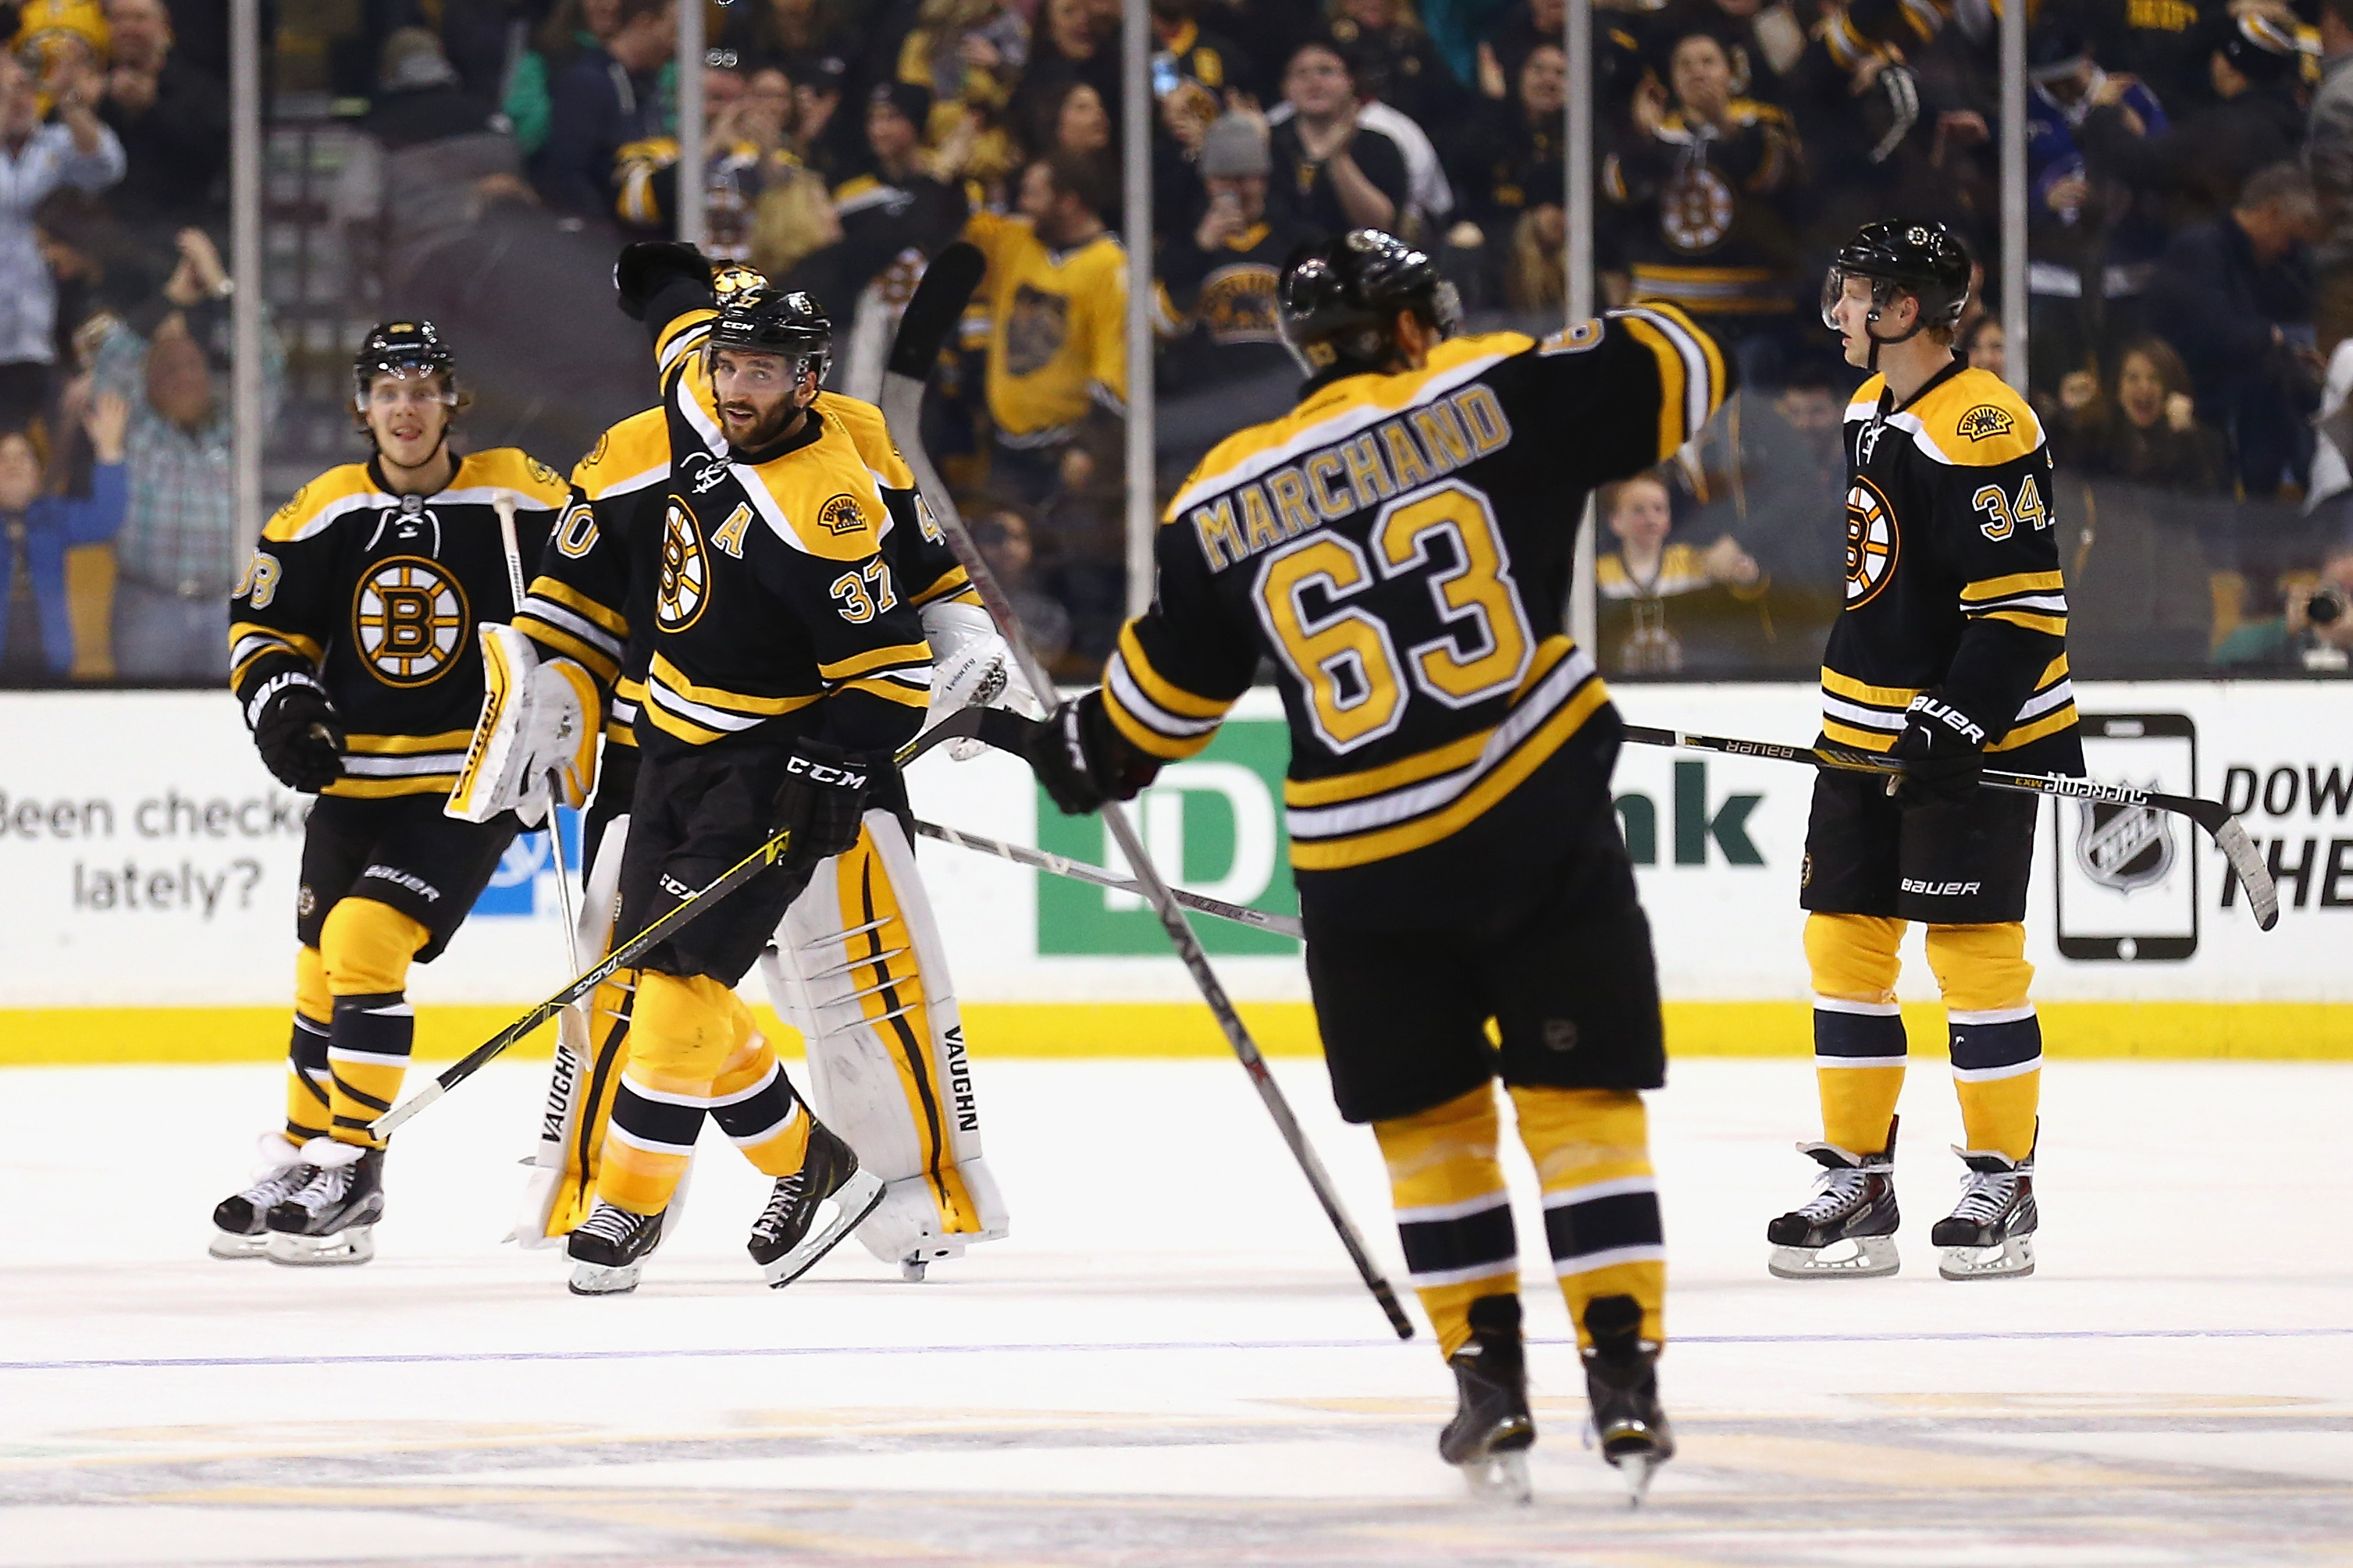 NHL scores 2015: Bruins top Bolts again in shootout, Panthers keep pace